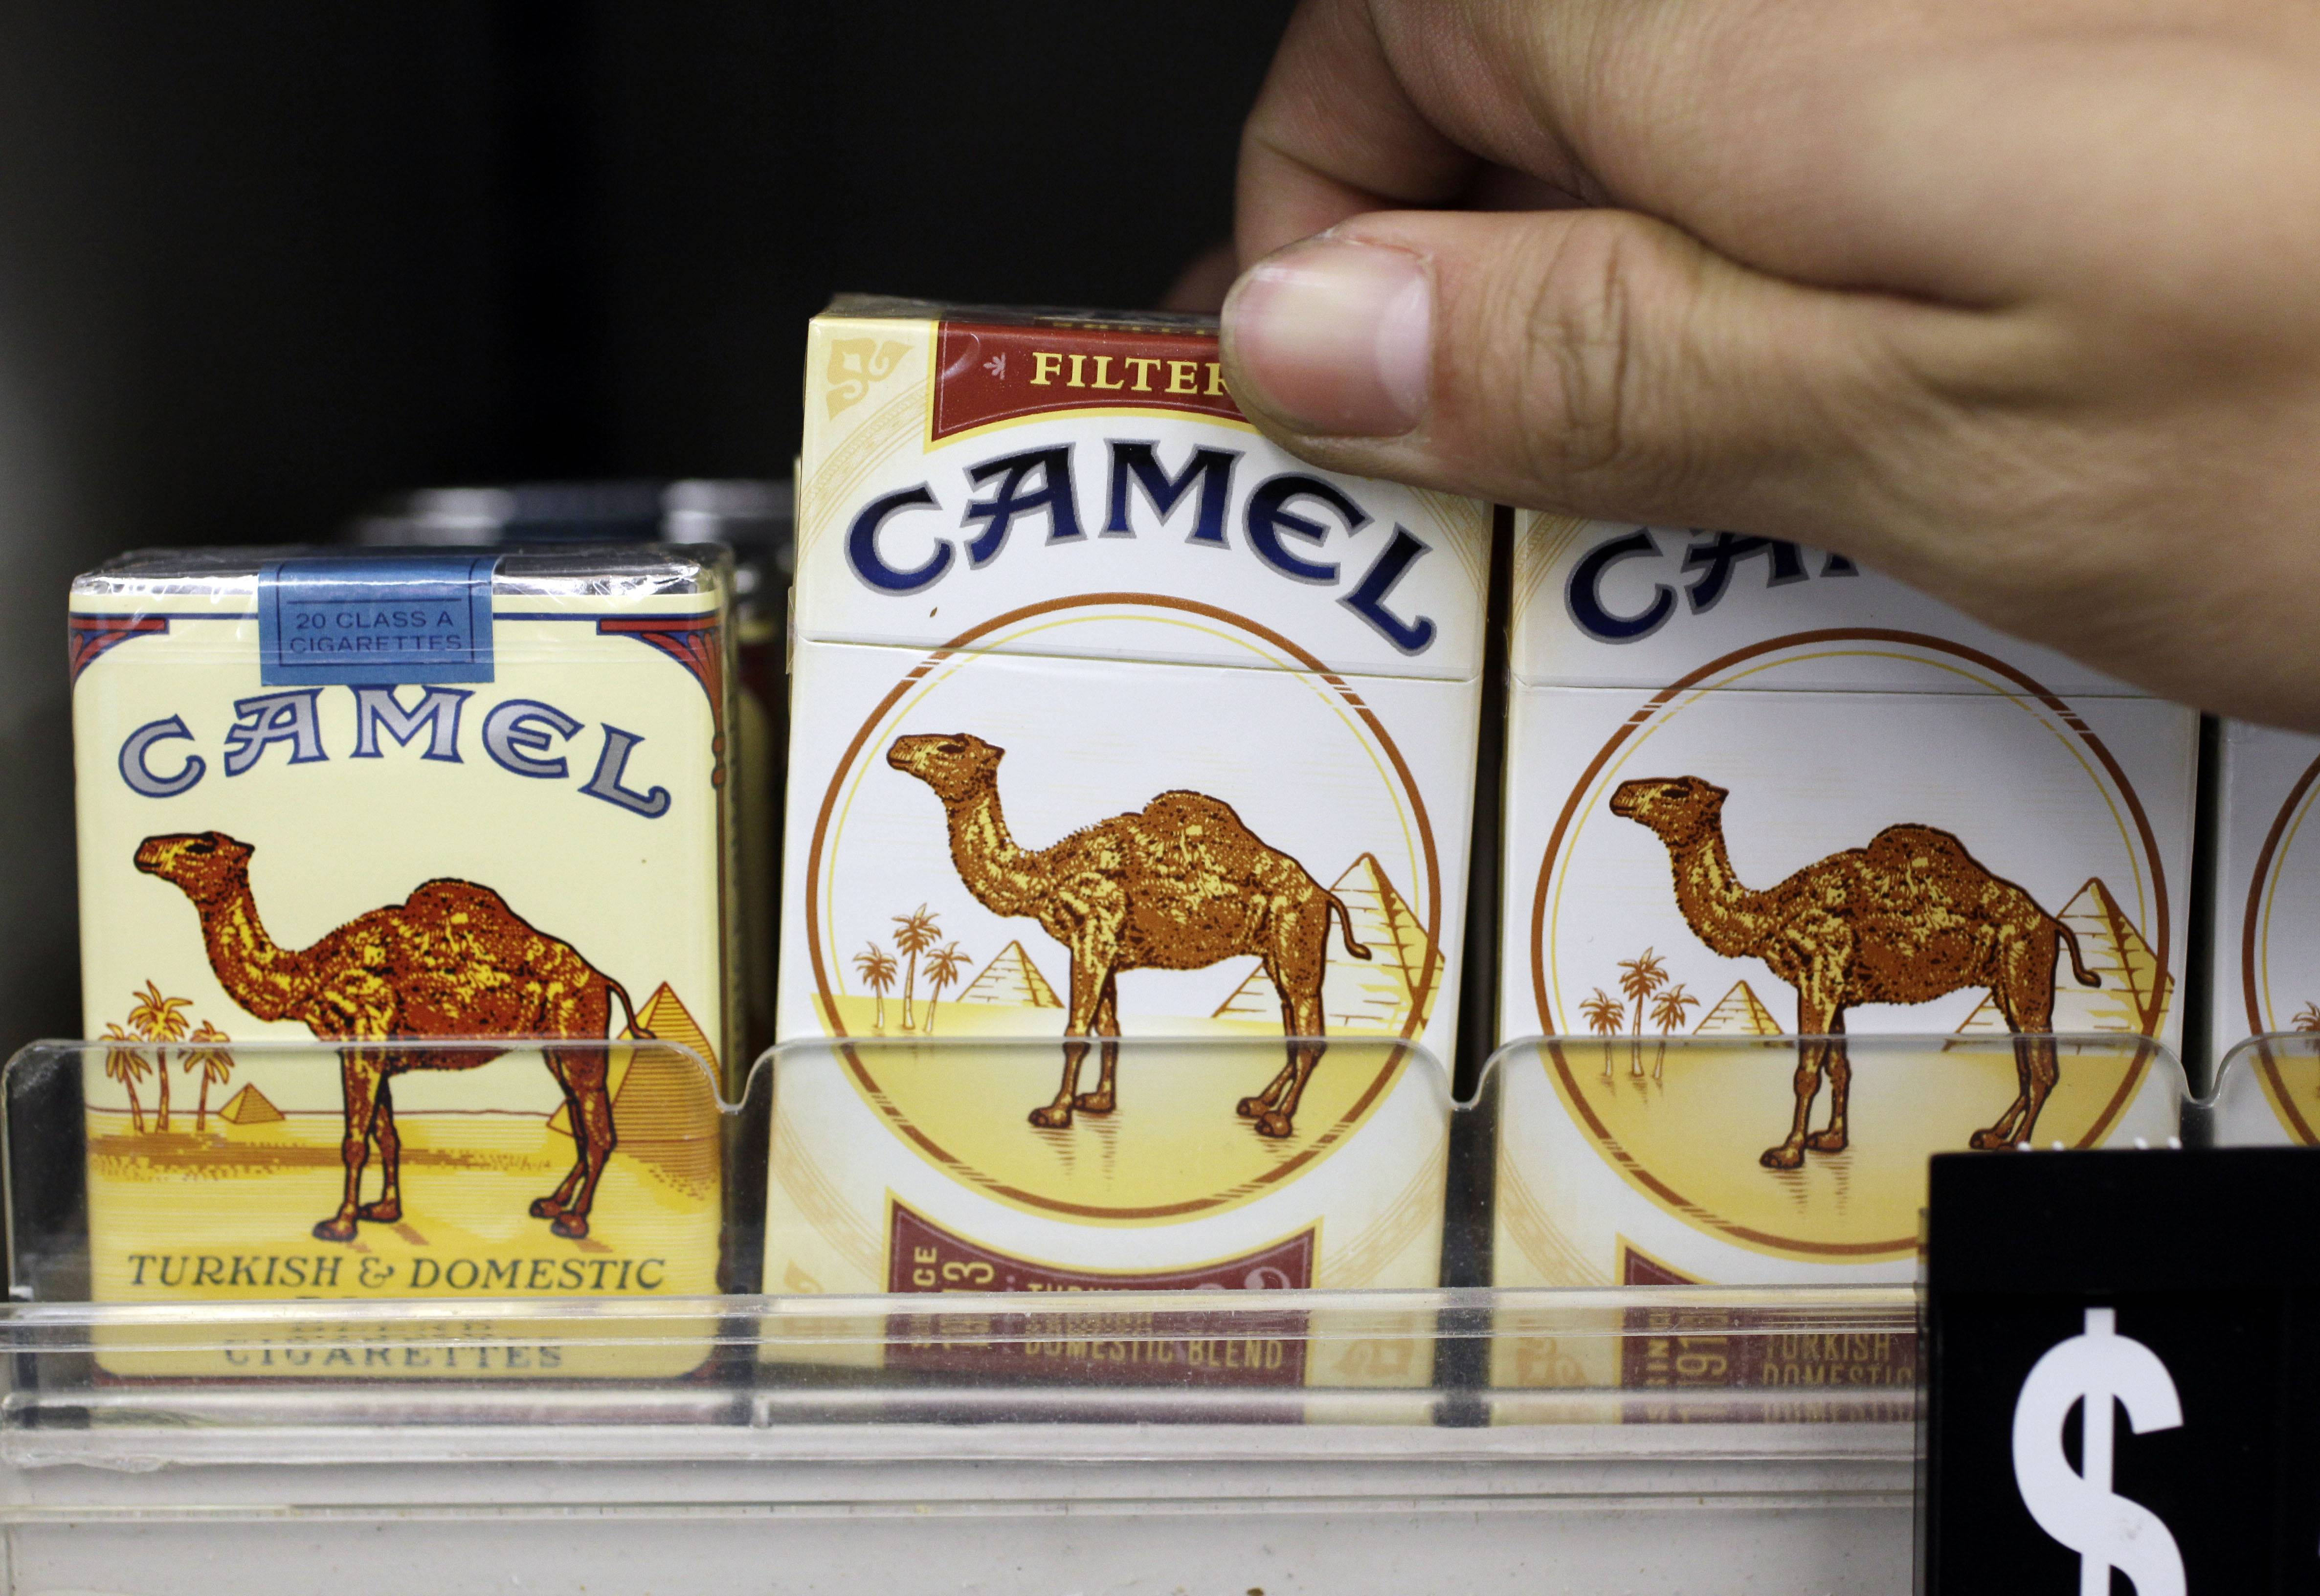 Camel cigarettes, a Reynolds American product, are on display at a liquor store in Palo Alto, Calif. Cigarette maker Reynolds American Inc. is planning to buy rival Lorillard Inc. for about $25 billion in a deal to combine two of the nation's oldest and biggest tobacco companies.